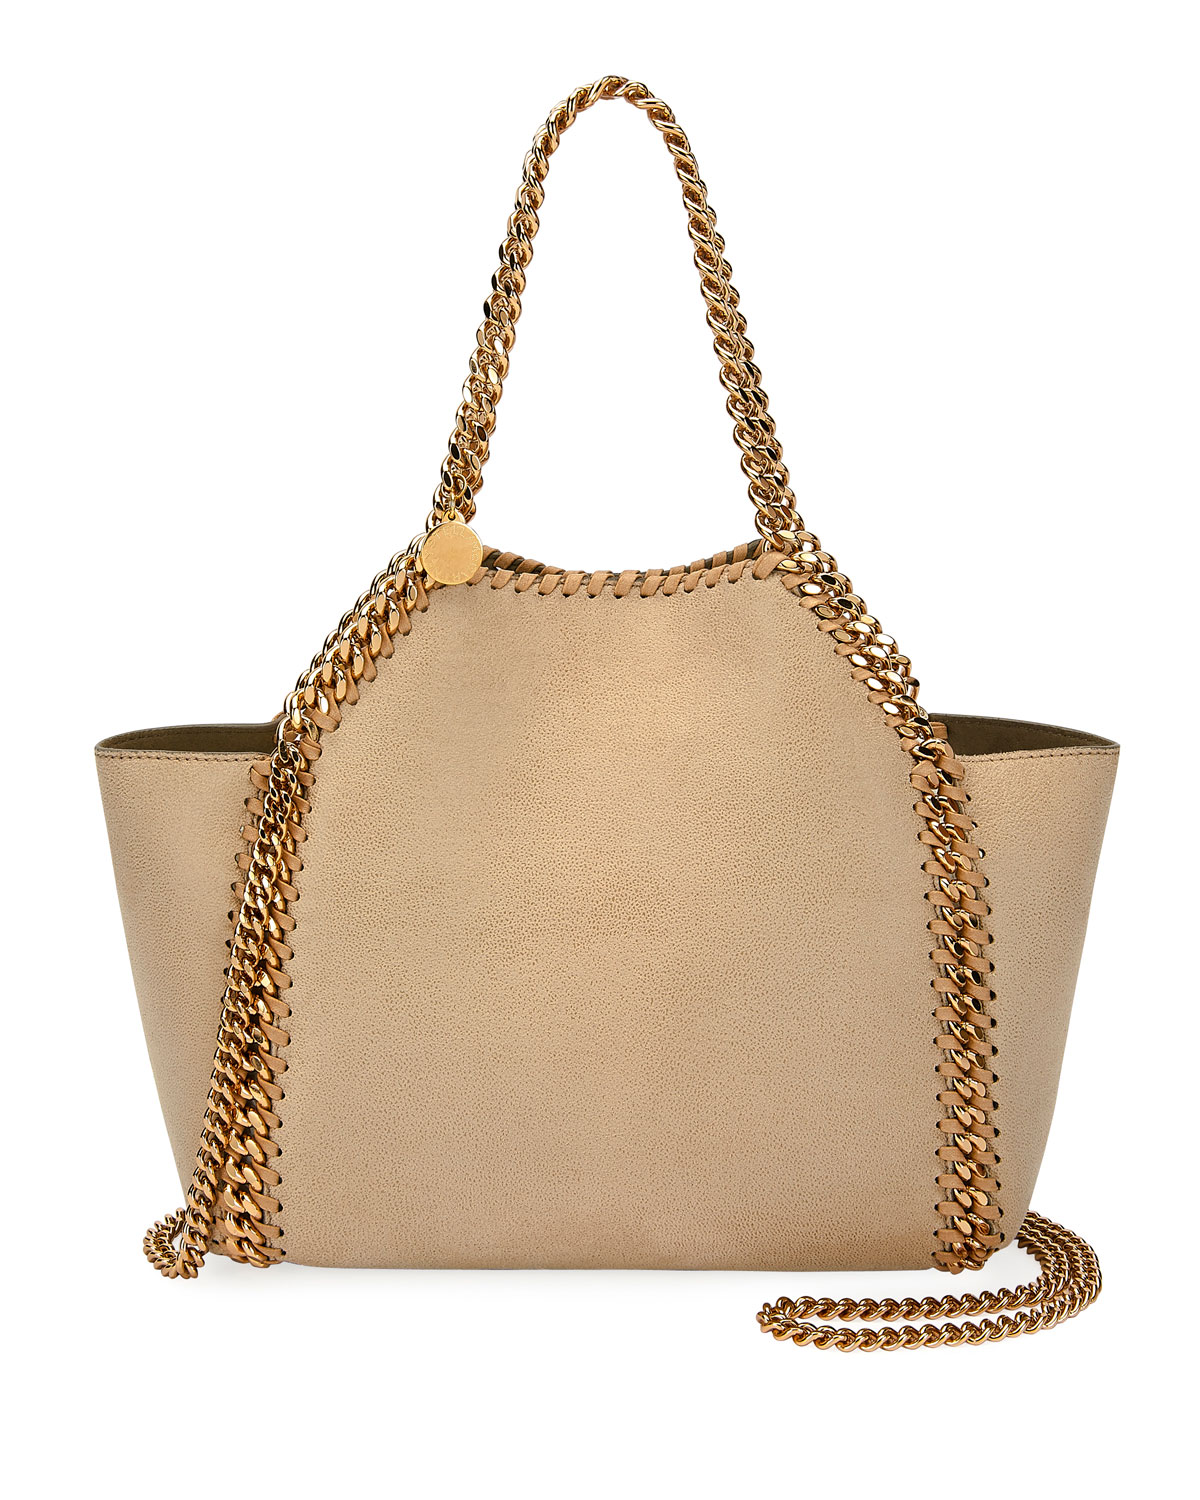 839003e00aa94 Stella McCartney Falabella Mini Reversible Shaggy Deer Tote Bag ...